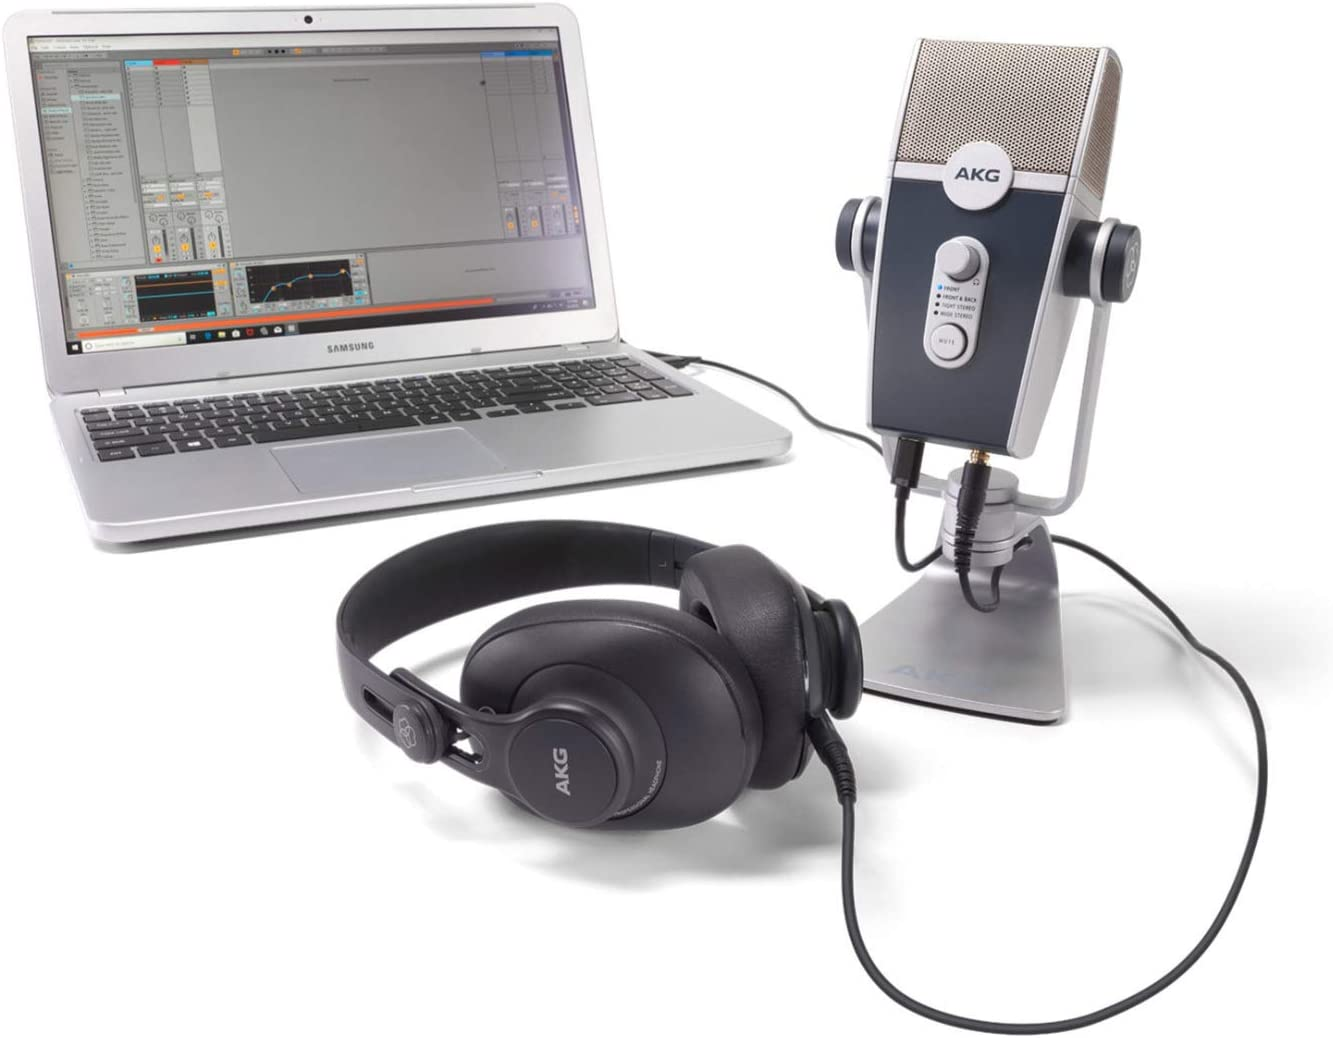 Amazon.com: AKG Lyra USB Microphone and AKG K371 Headphones with Knox 3.0 4  Port USB Hub Bundle (2 Items): Musical Instruments